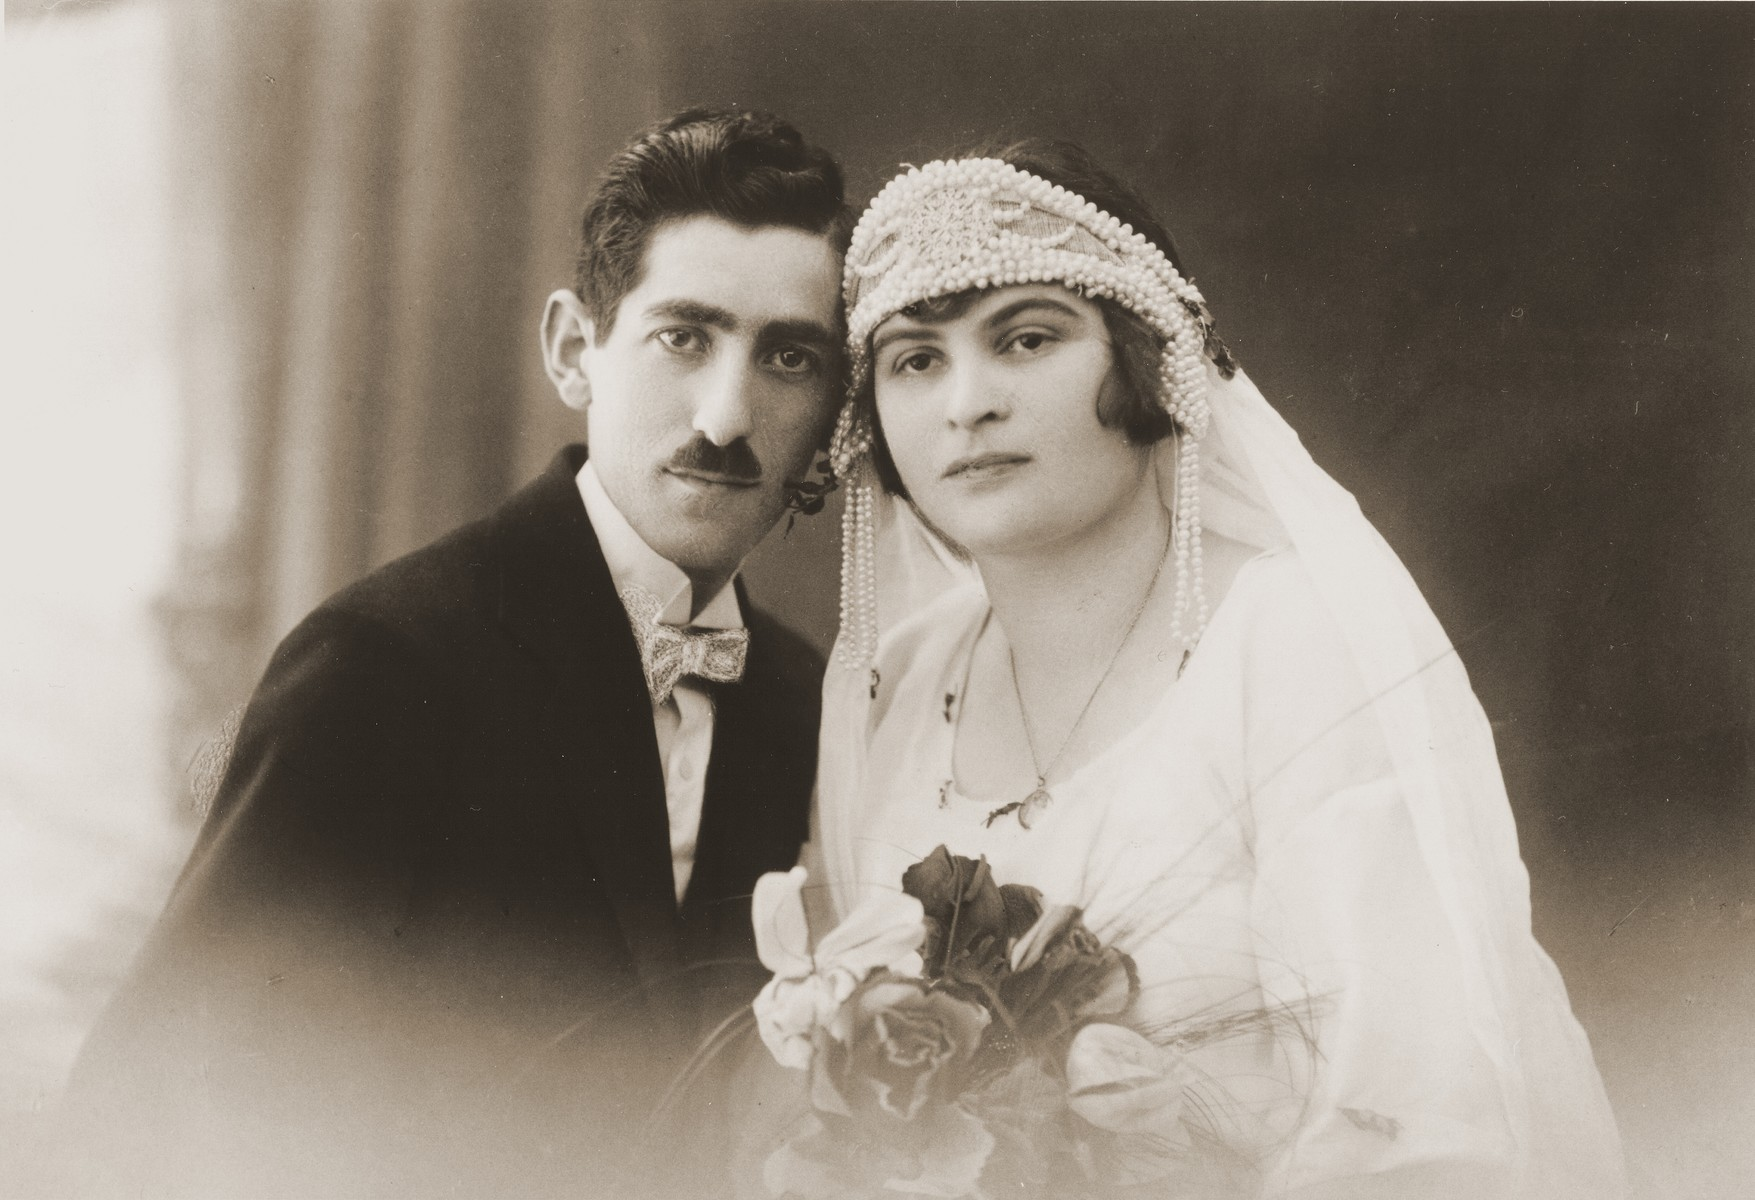 Wedding portrait of a Jewish couple in Lvov, Poland.  Pictured are Marie Harmelin (who was interned on the Isle of Man during World War II and survived) and Solomon Auerbach (who perished in Dachau or Mauthausen), relatives of the donor.